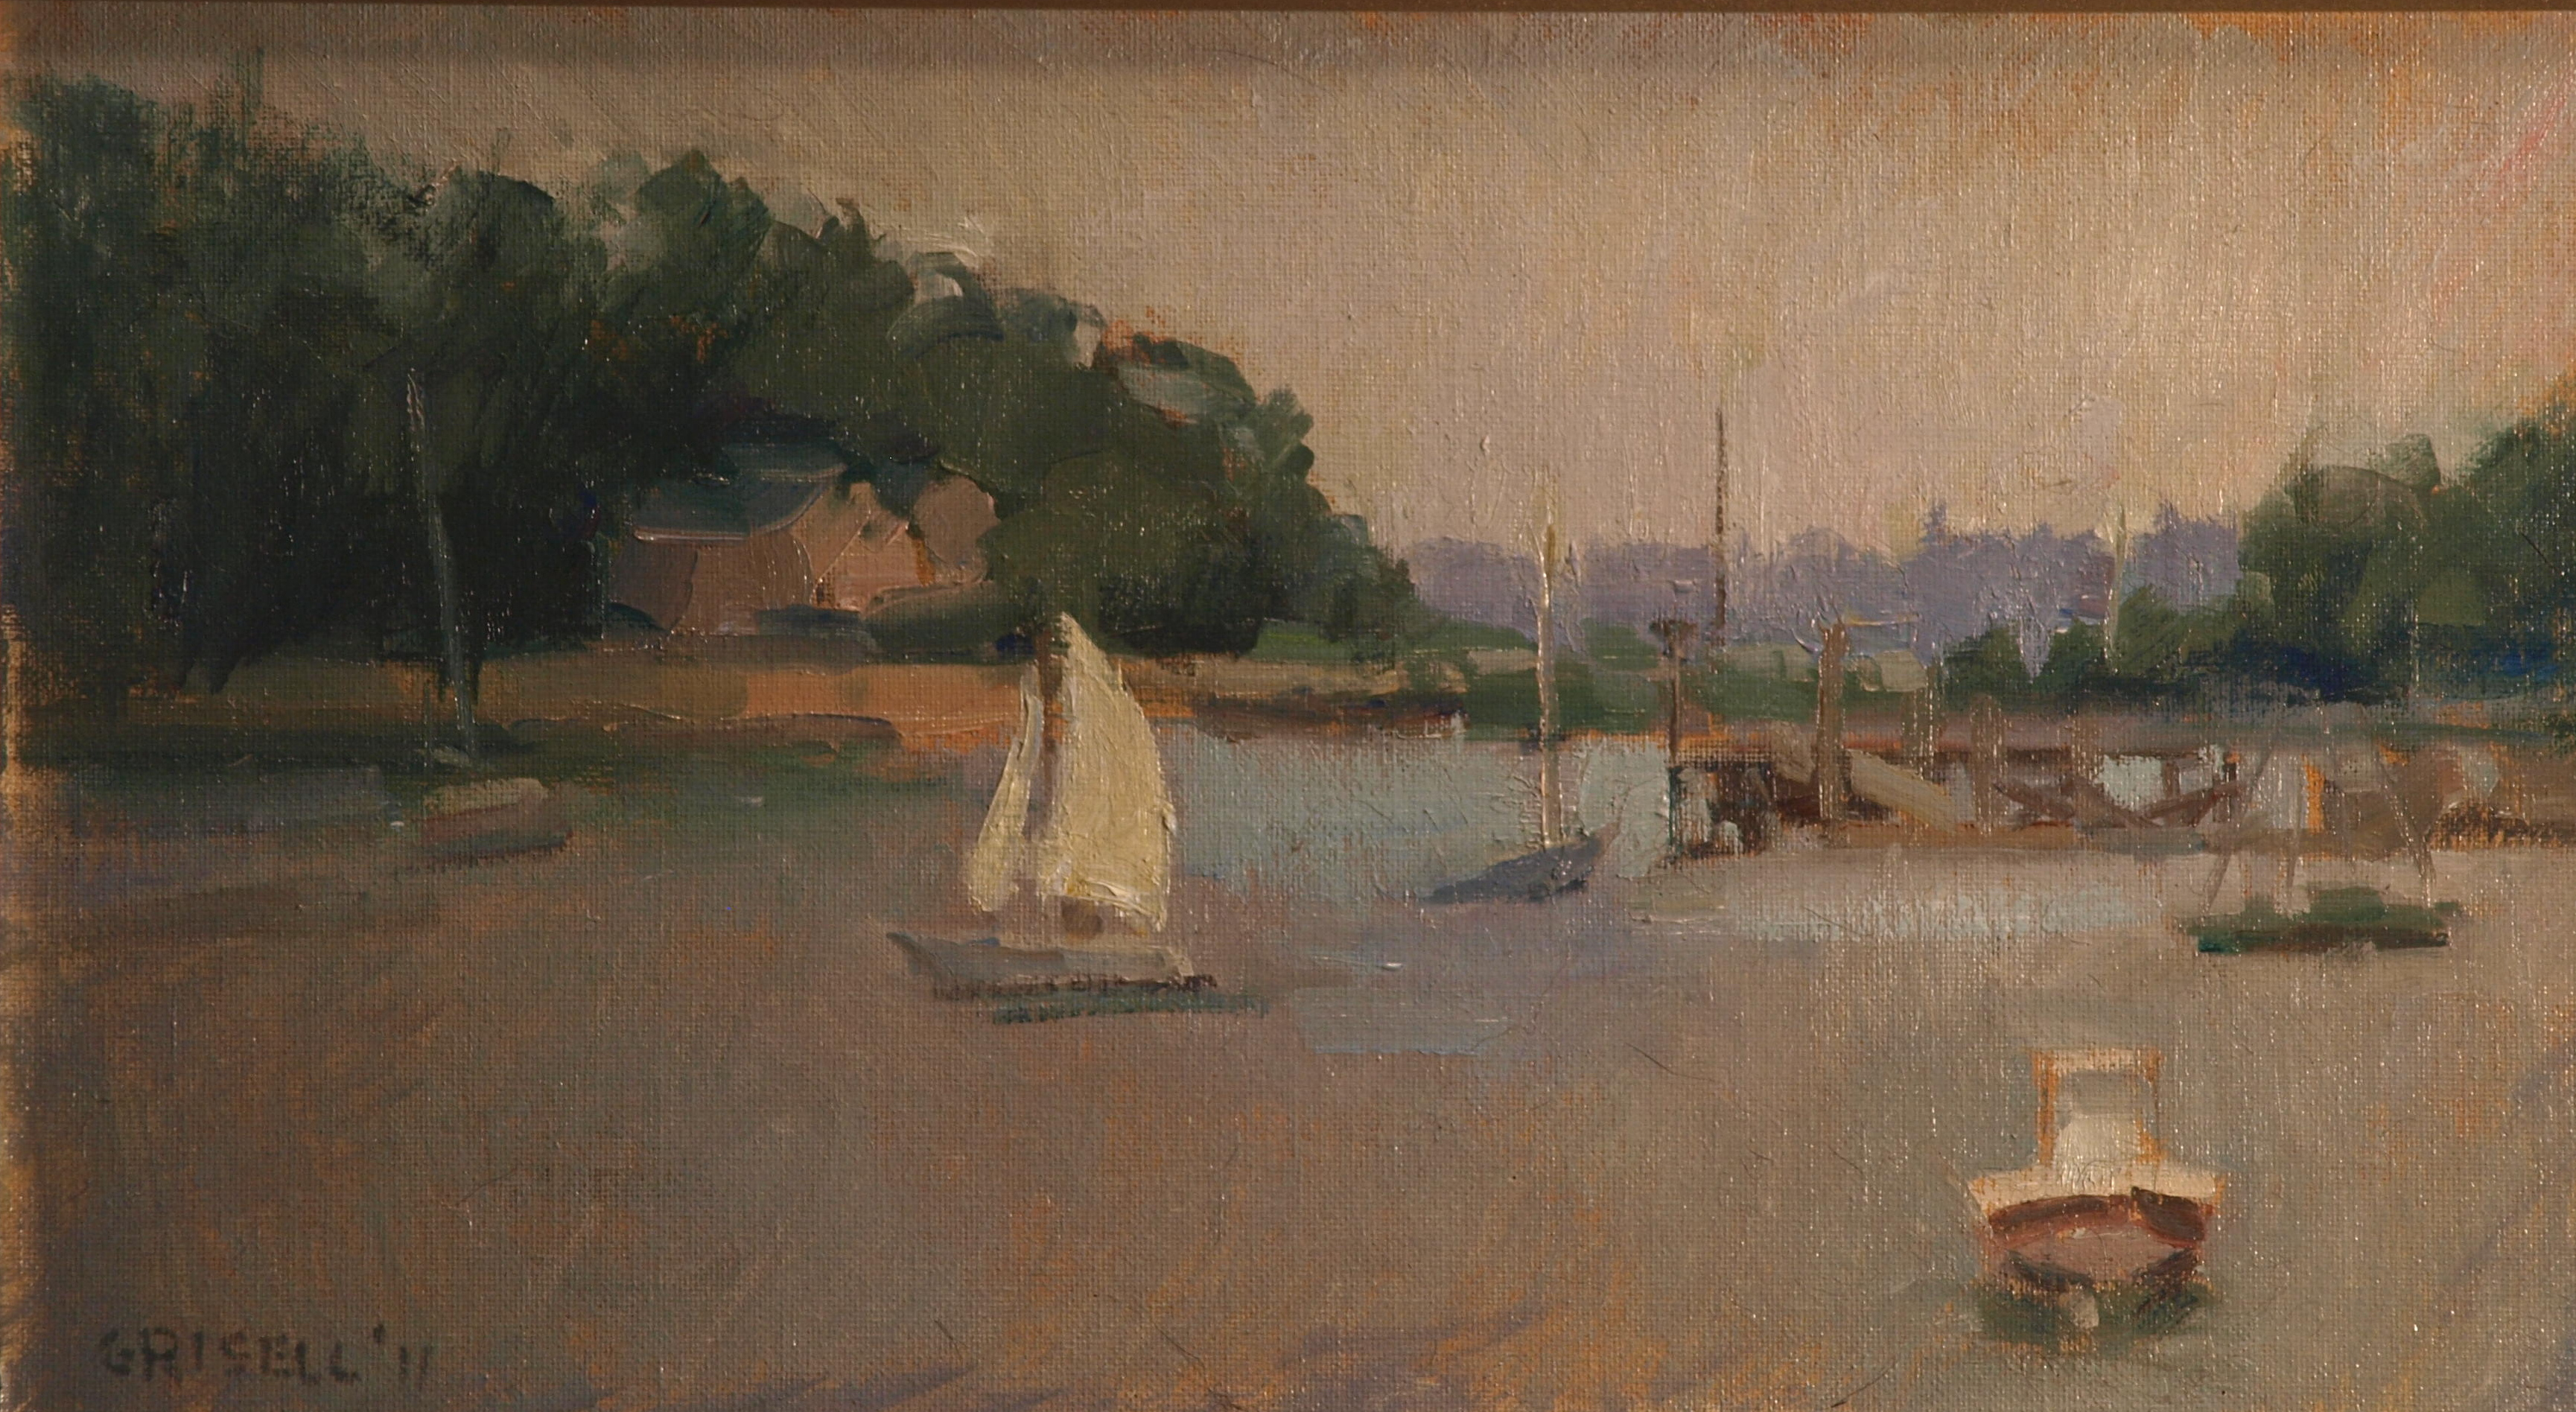 Sailboat - Darien, Oil on Canvas on Panel, 9 x 16 Inches, by Susan Grisell, $250